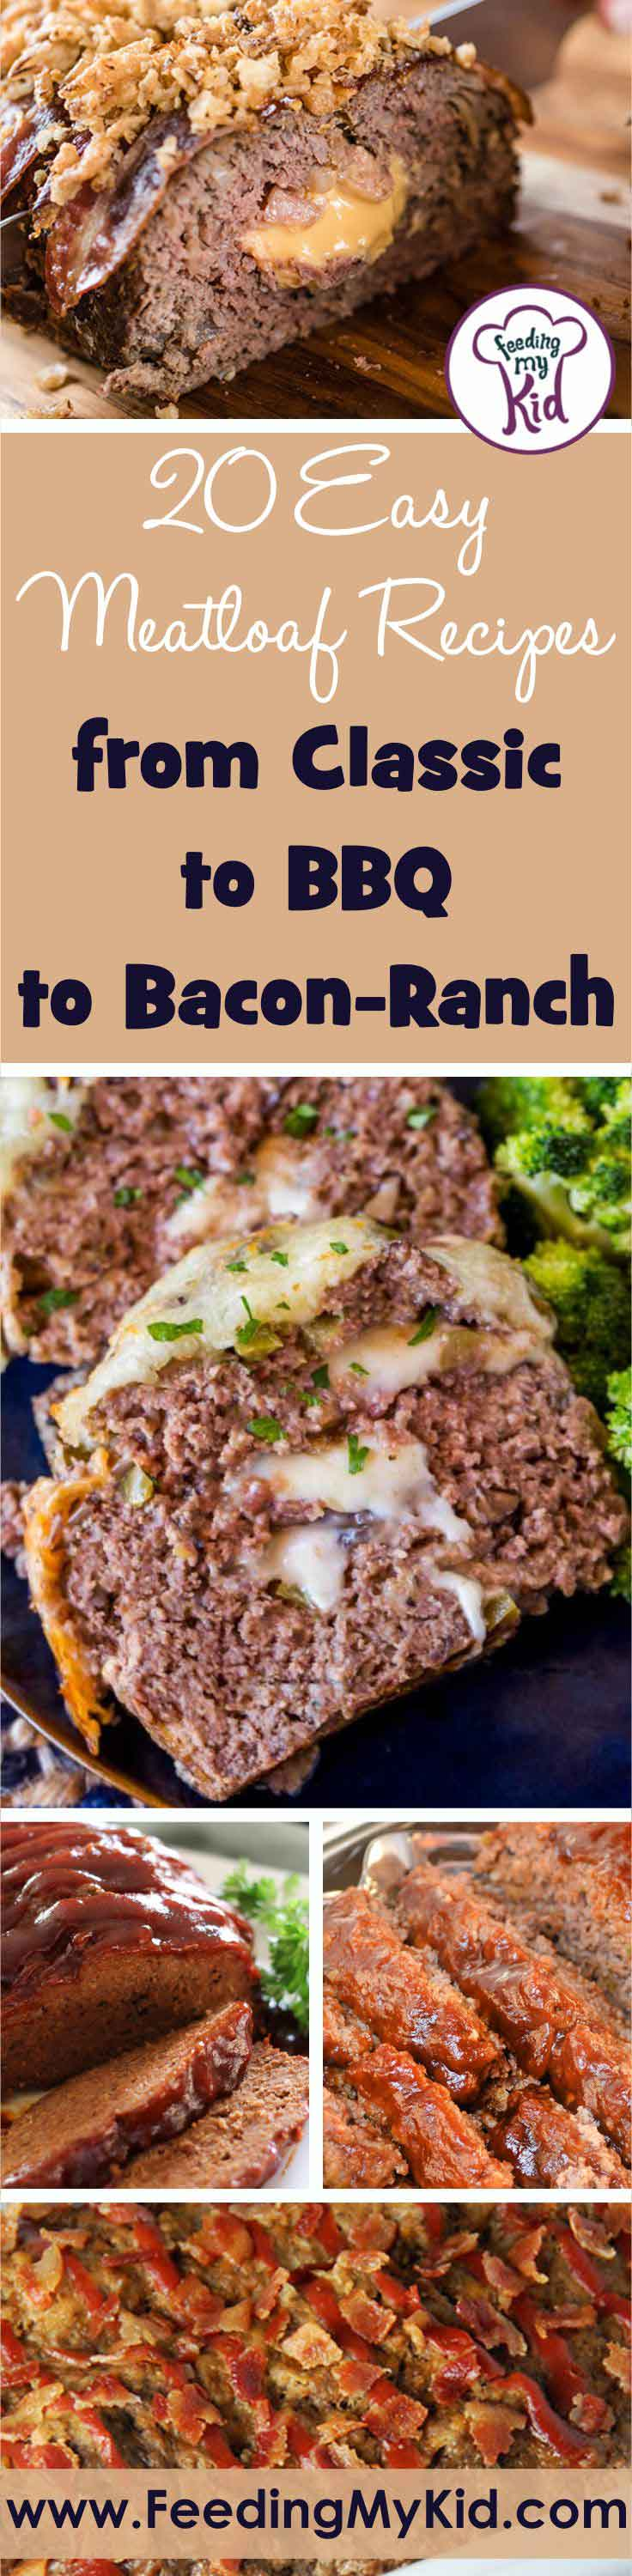 Meatloaf is one of those classic weeknight dinners we all grew up with. These meatloaf recipes are nothing like what you grew up with! So yummy.